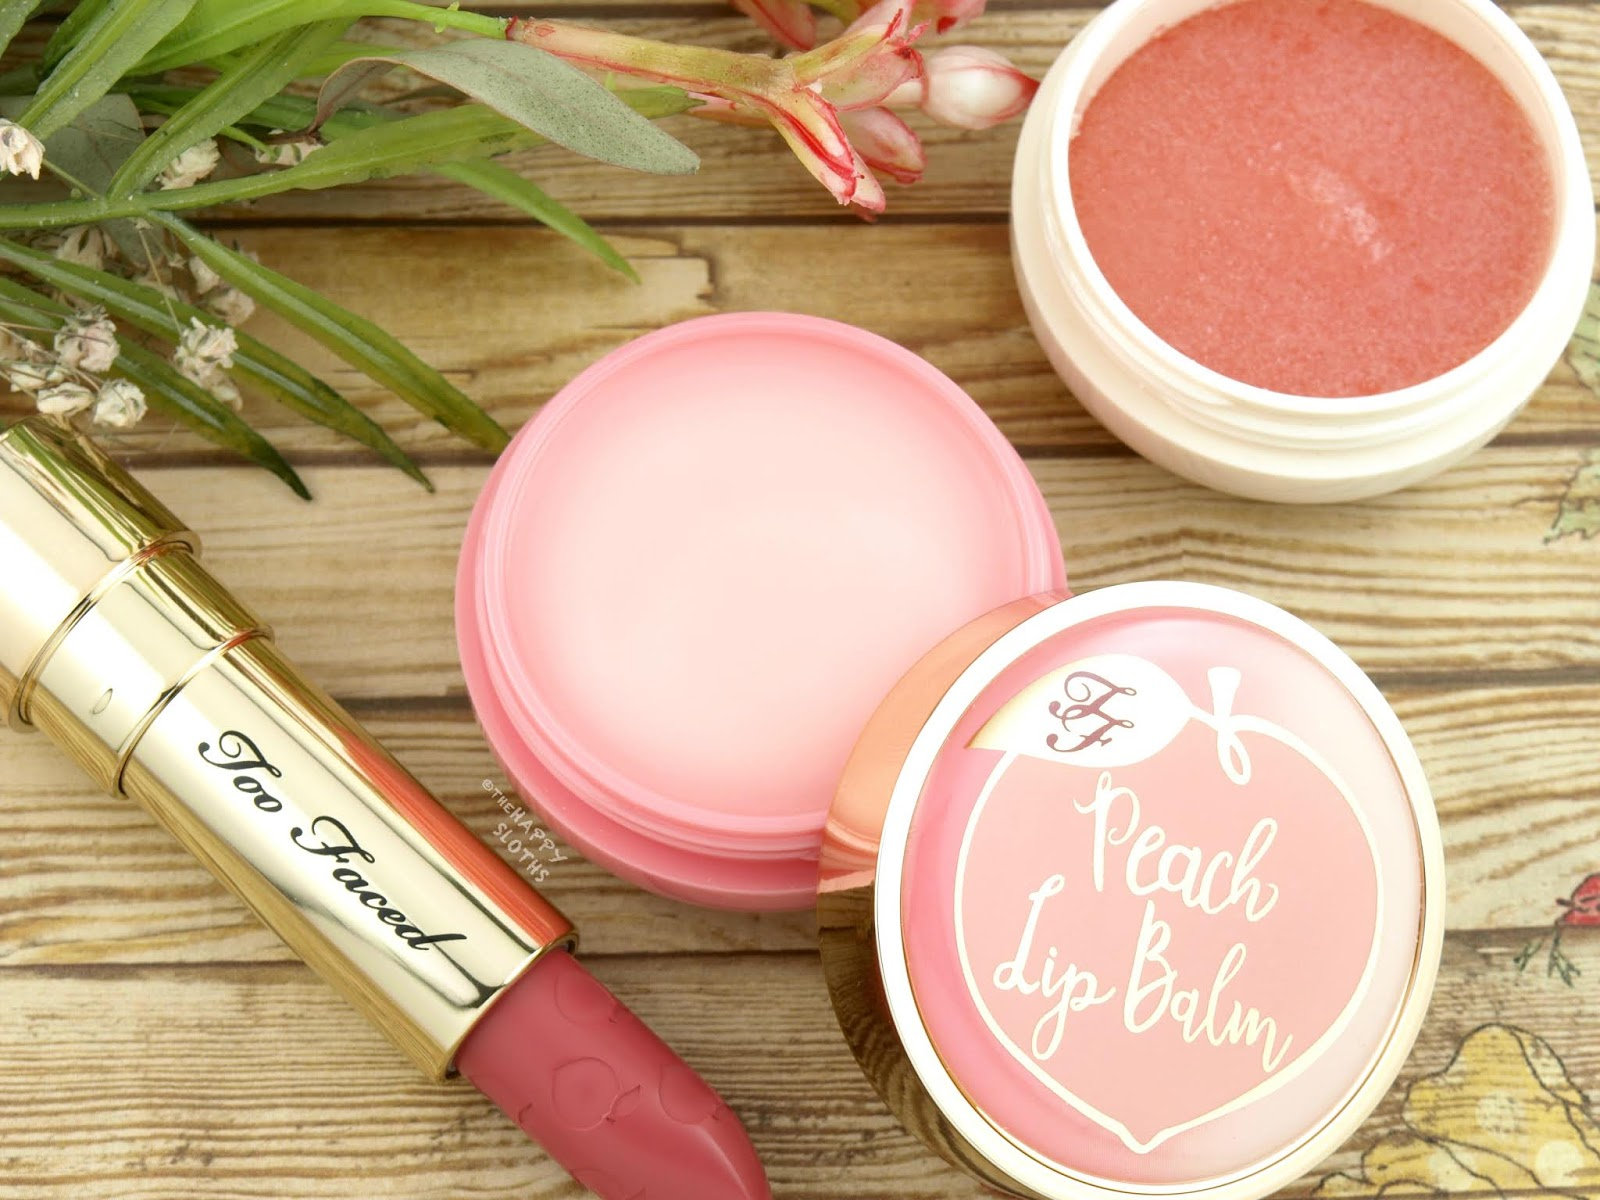 Too Faced | Peach Lip Balm: Review